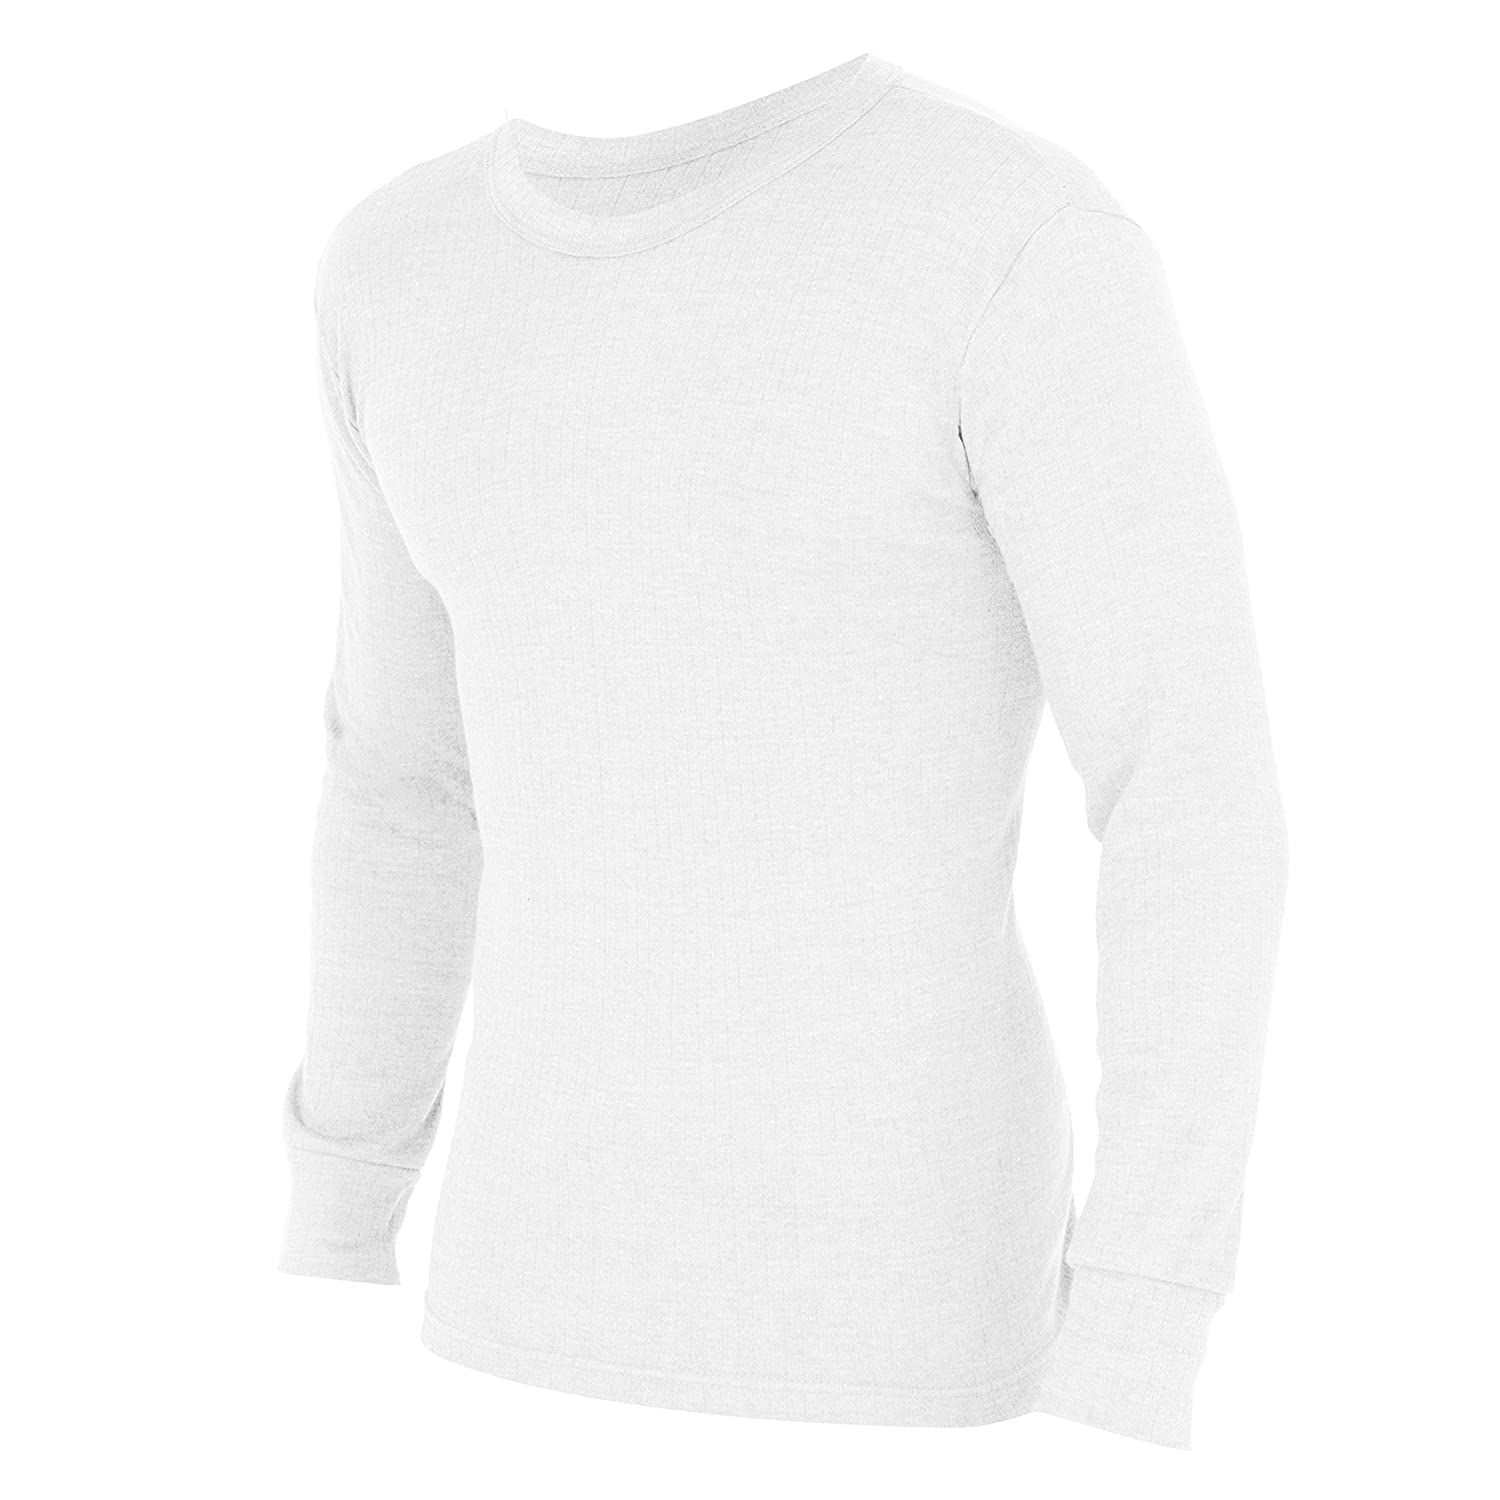 Floso Mens Thermal Underwear Long Sleeve T Shirt Top (Standard Range) UTTHERM22